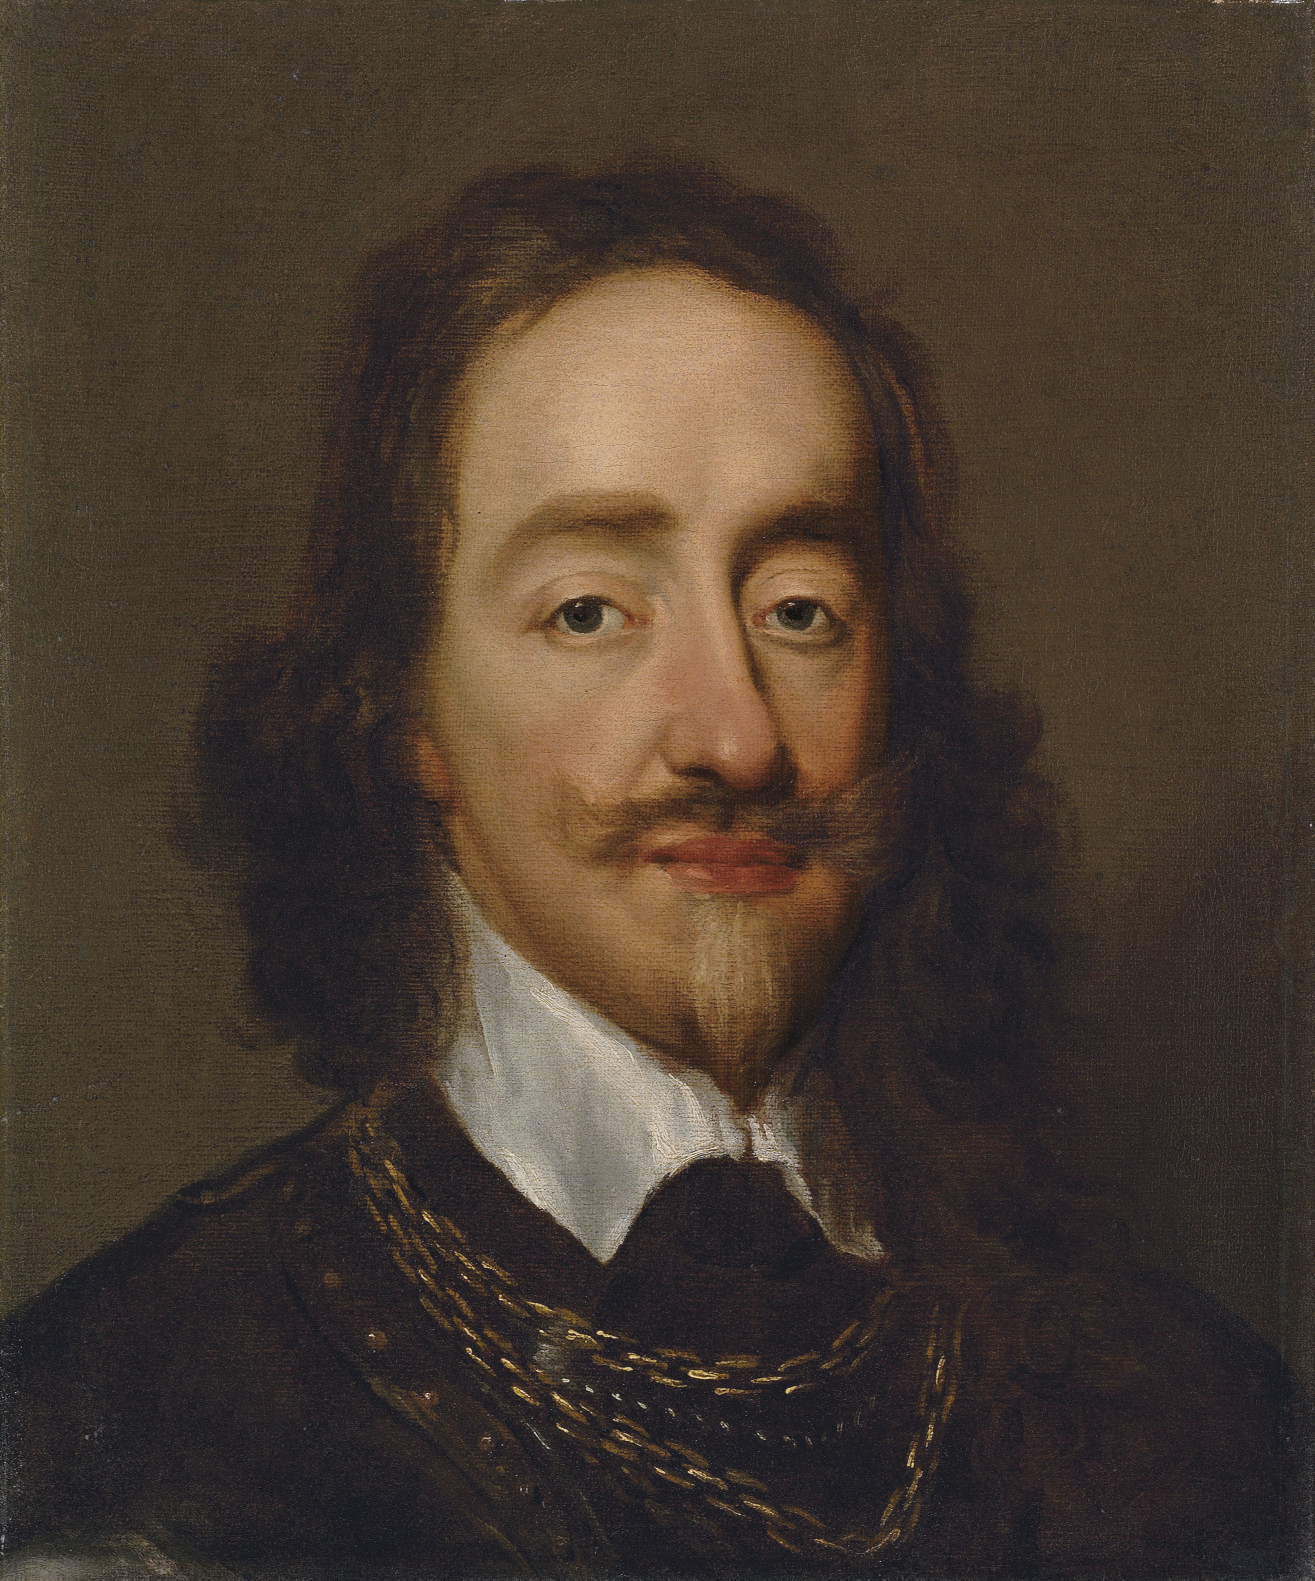 Portrait of King Charles I (1600-1649), bust-length, in armour